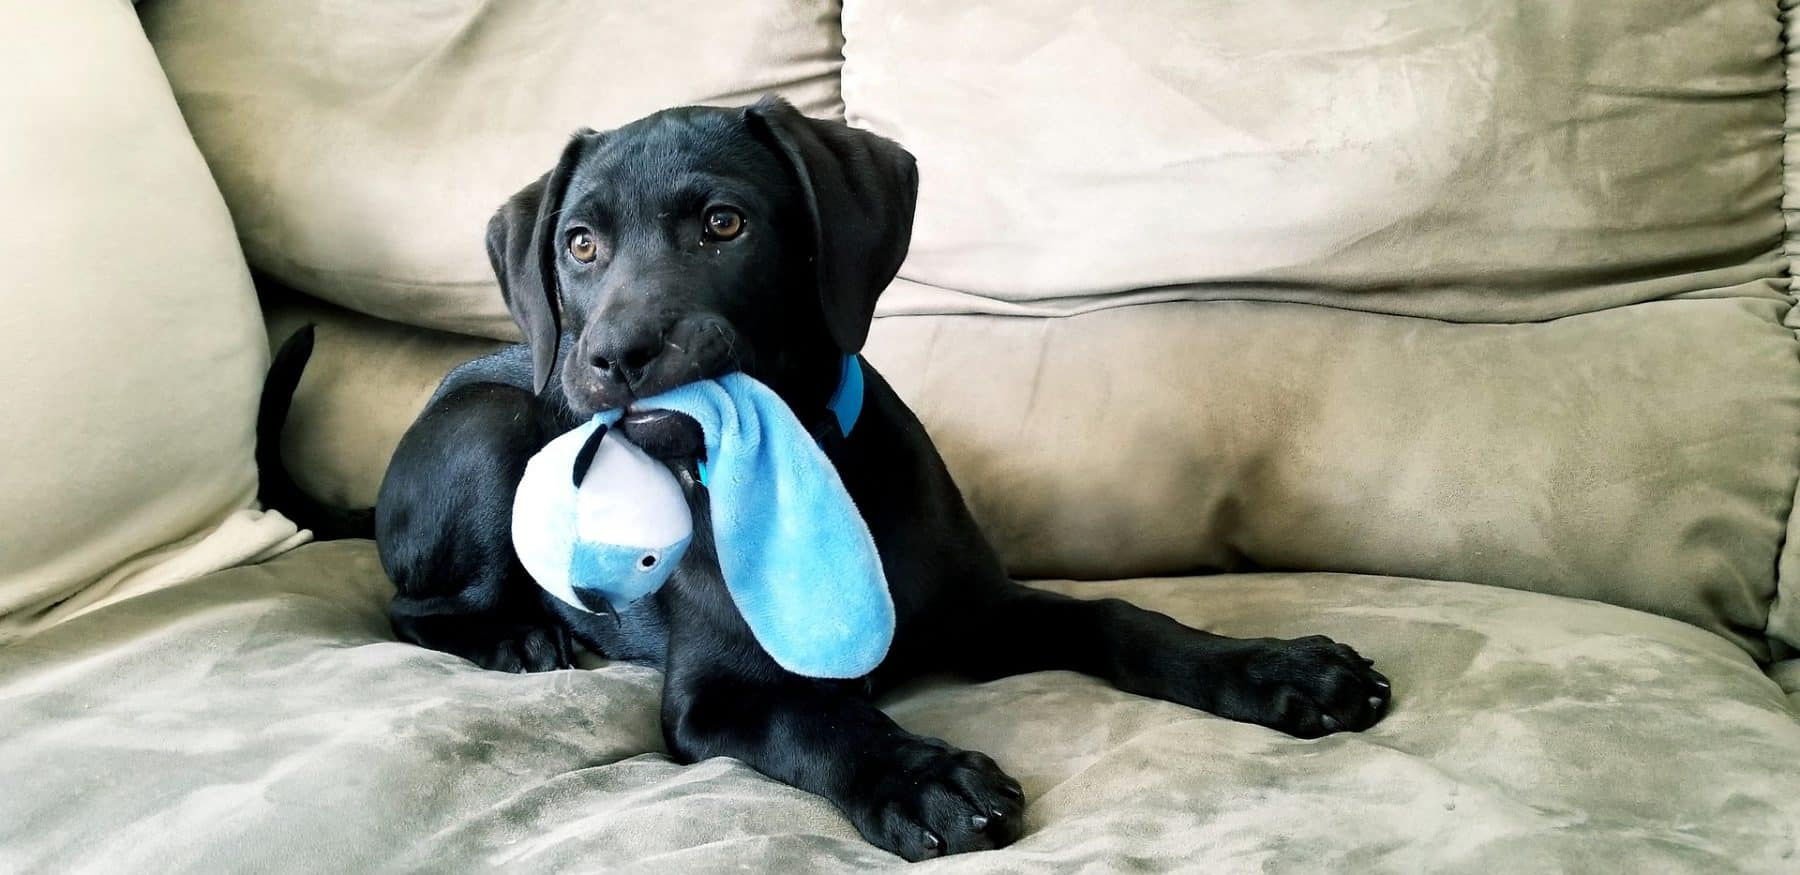 3e6f85c172c577 20 Chew Toys for Puppies That'll Save Your Shoes | The Dog People by  Rover.com